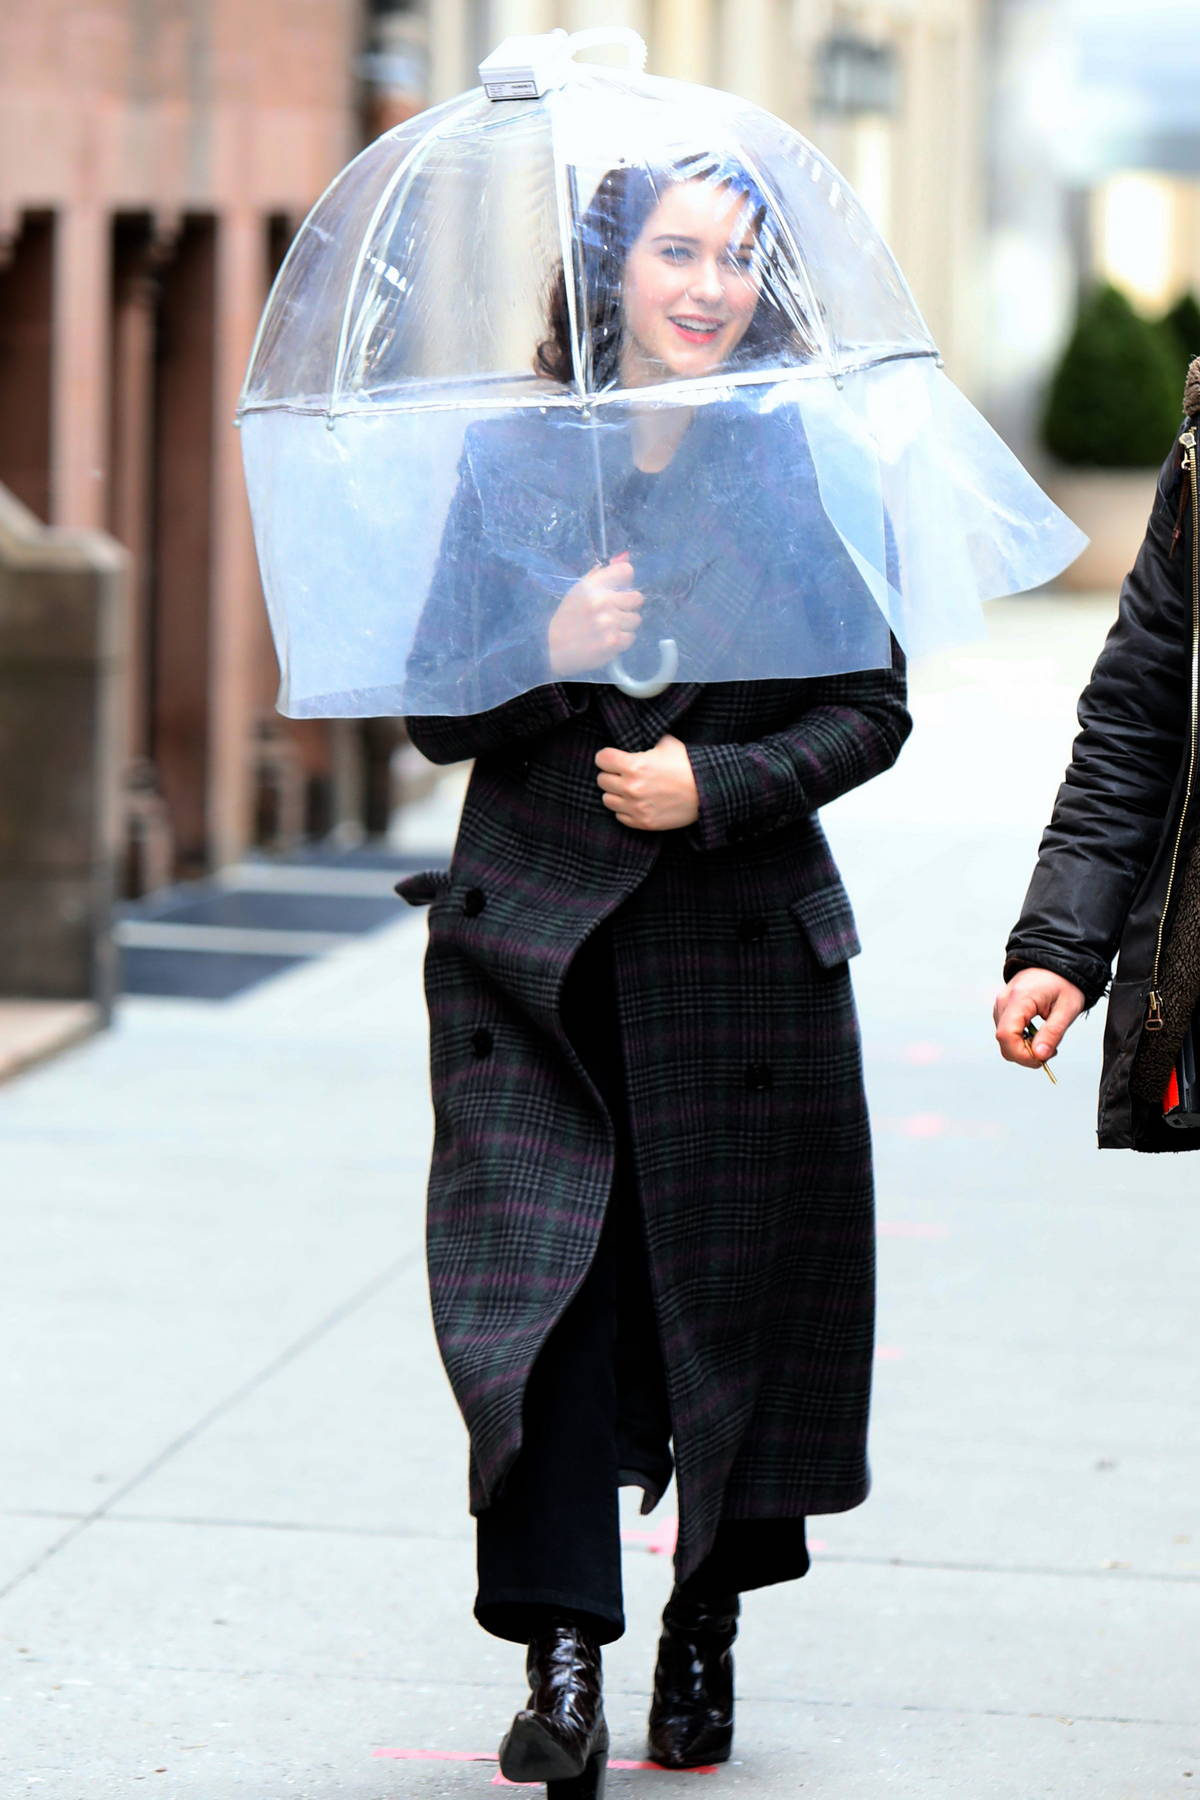 Rachel Brosnahan uses a protective clear umbrella on the set of 'The Marvelous Mrs. Maisel' in Manhattan, New York City